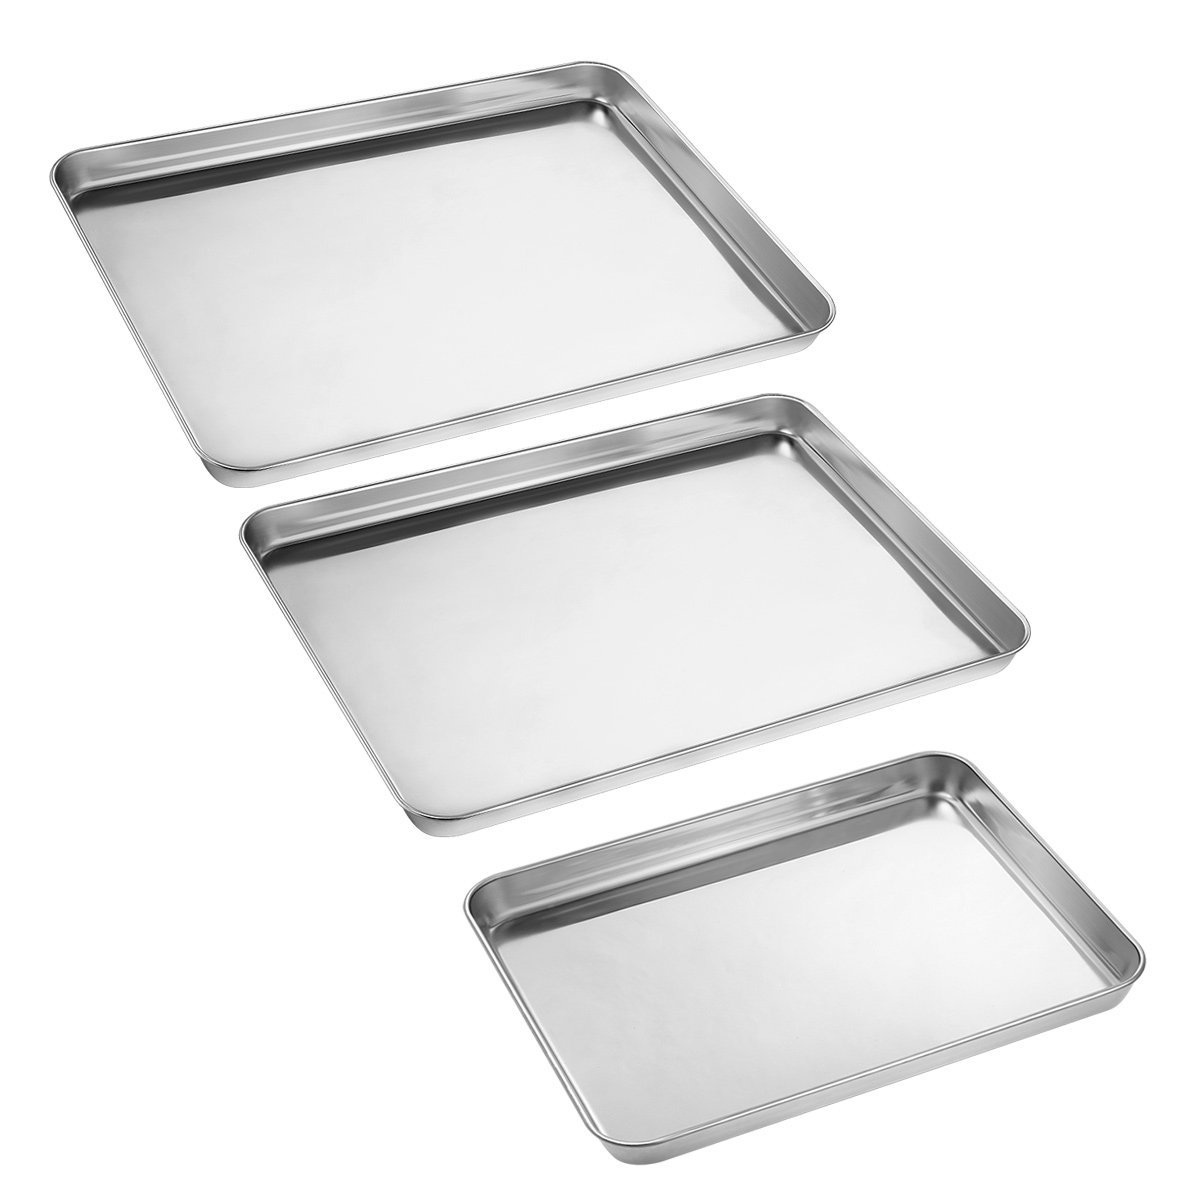 Baking Sheets Set of 3, HKJ Chef Baking Pans 3 Pieces & Stainless Steel Cookie Sheets & Toaster Oven Tray Pans, Non Toxic & Healthy, Mirror & Easy Clean by HKJ Chef (Image #2)